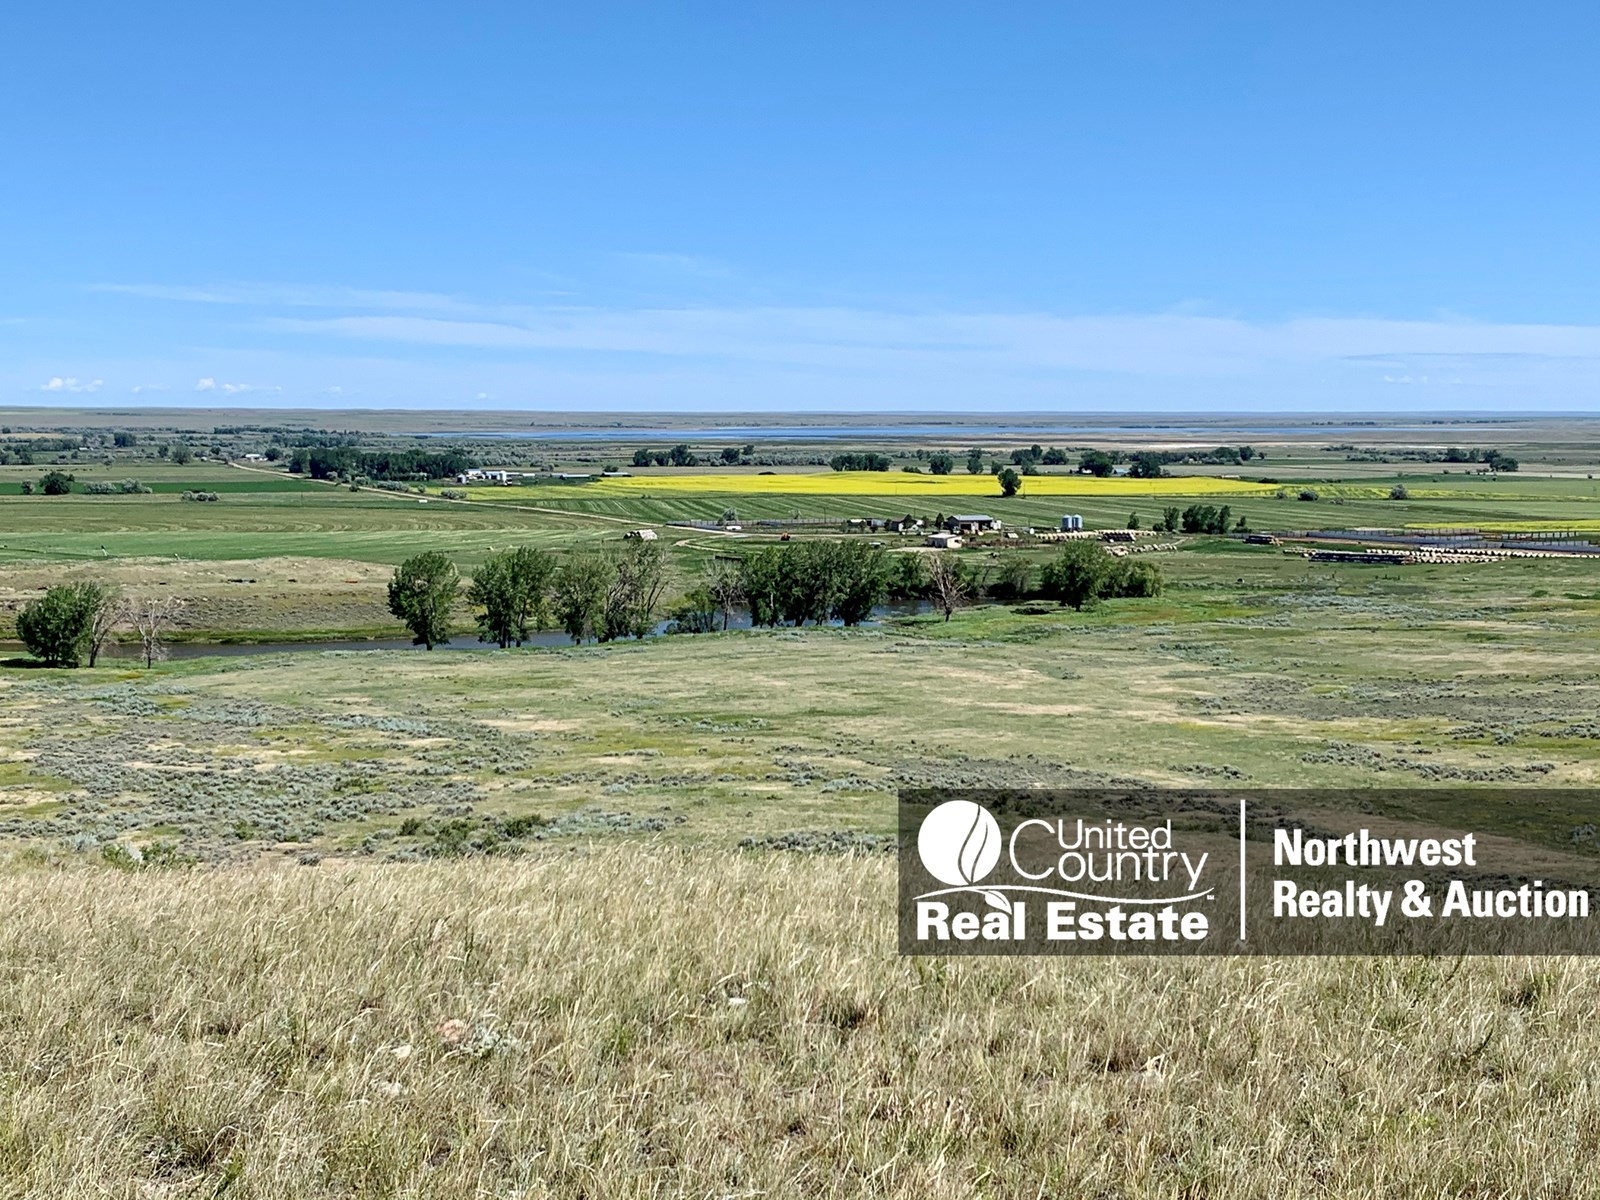 MT Ranch Grazing Irrigated Feedlot Outbuildings Deer Hunting